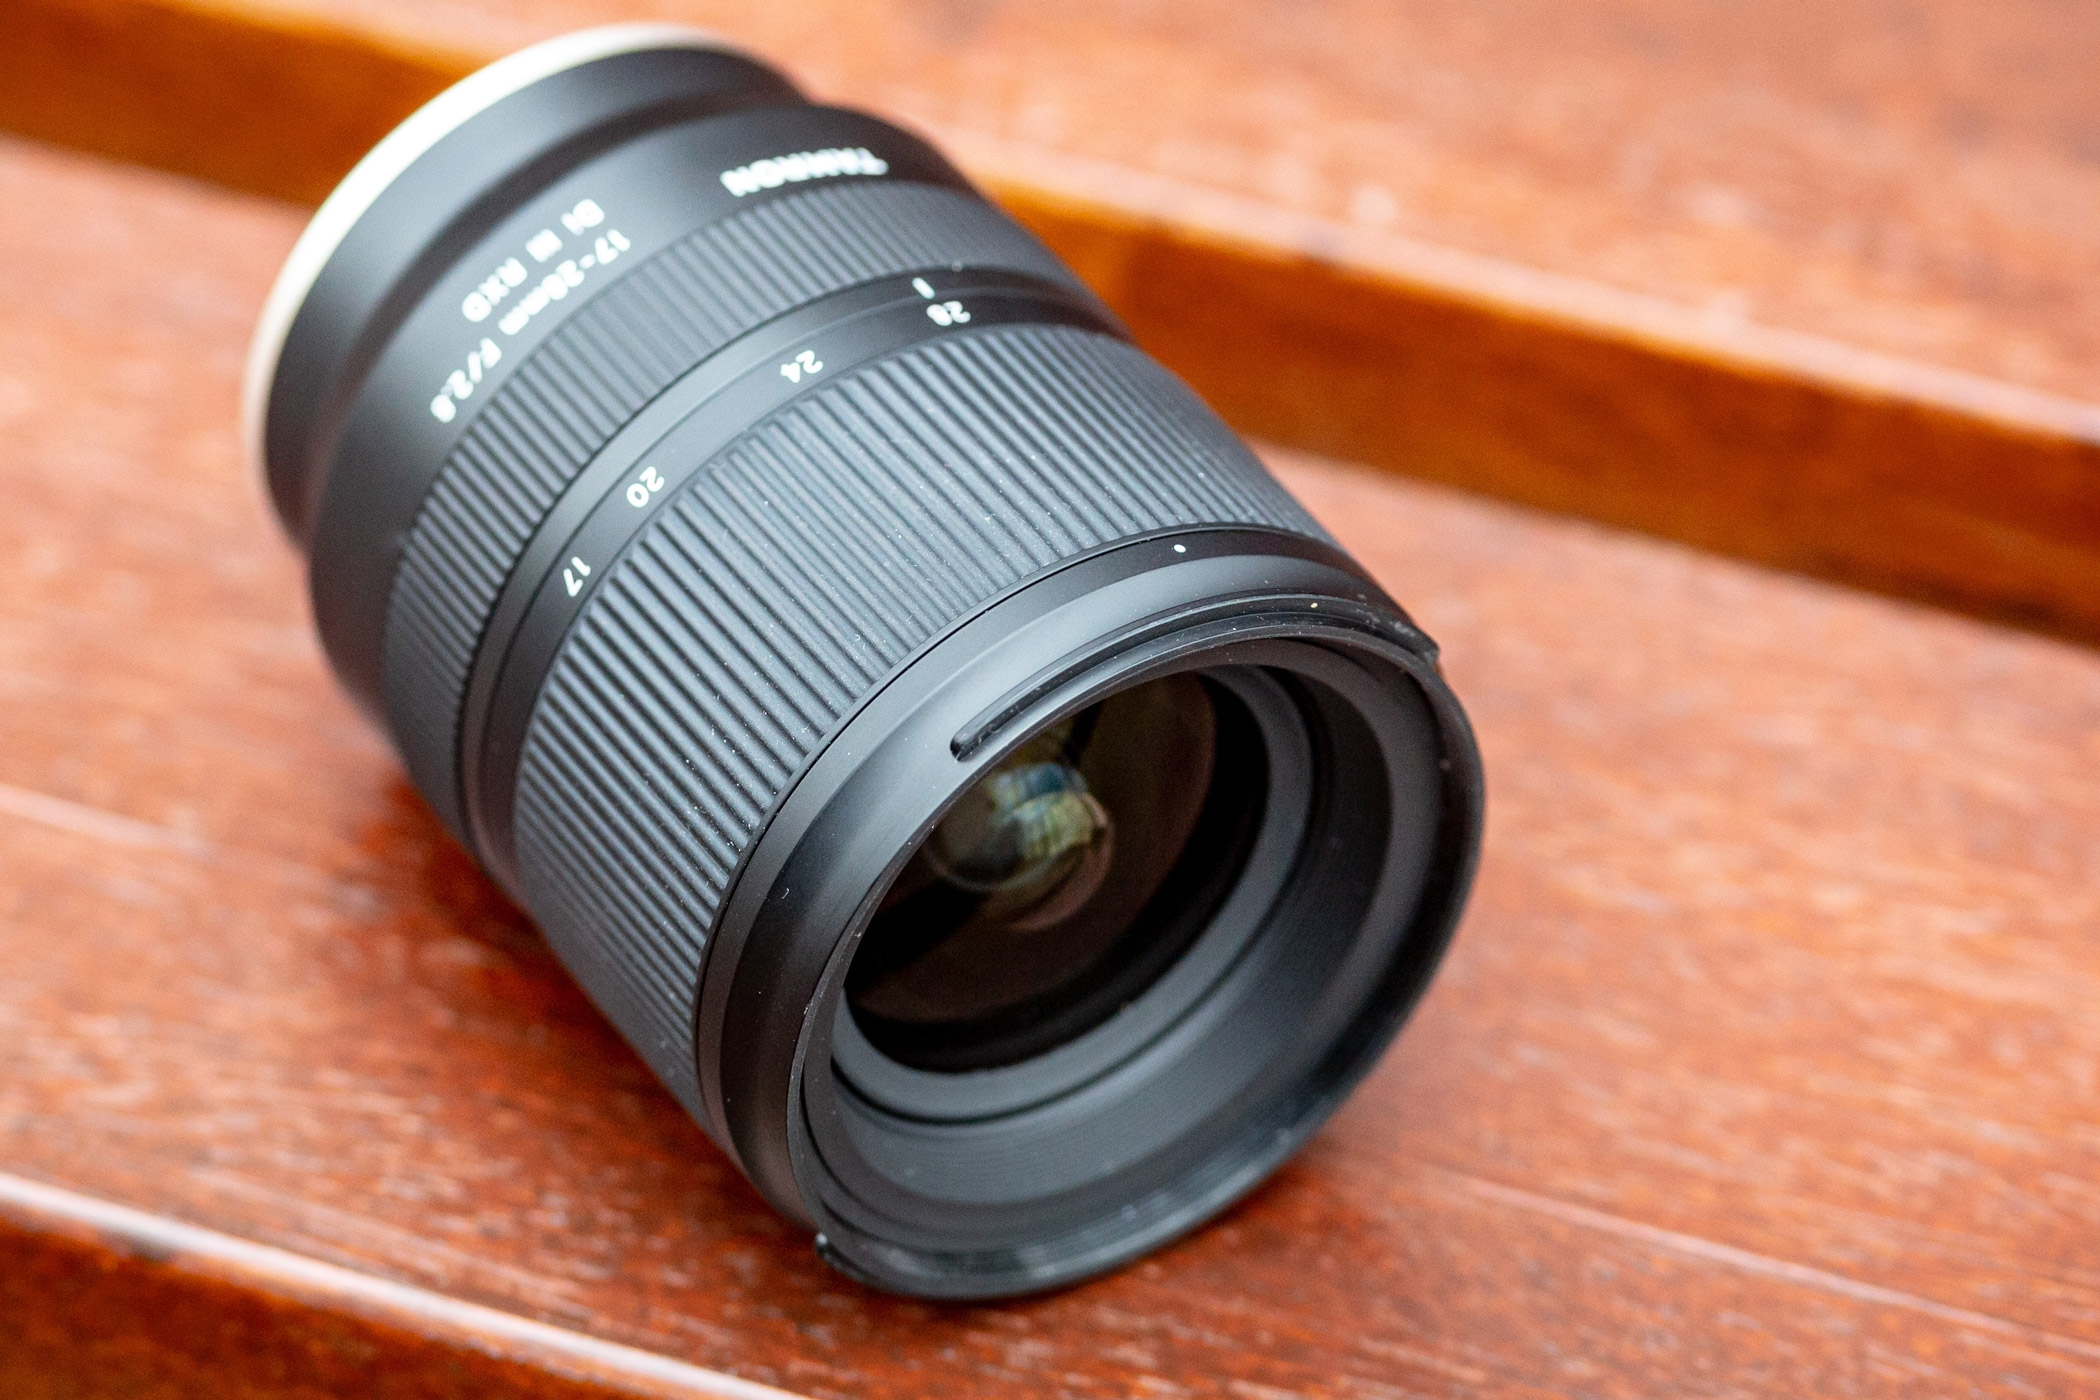 Tamron 17-28mm F/2.8 Di III RXD review